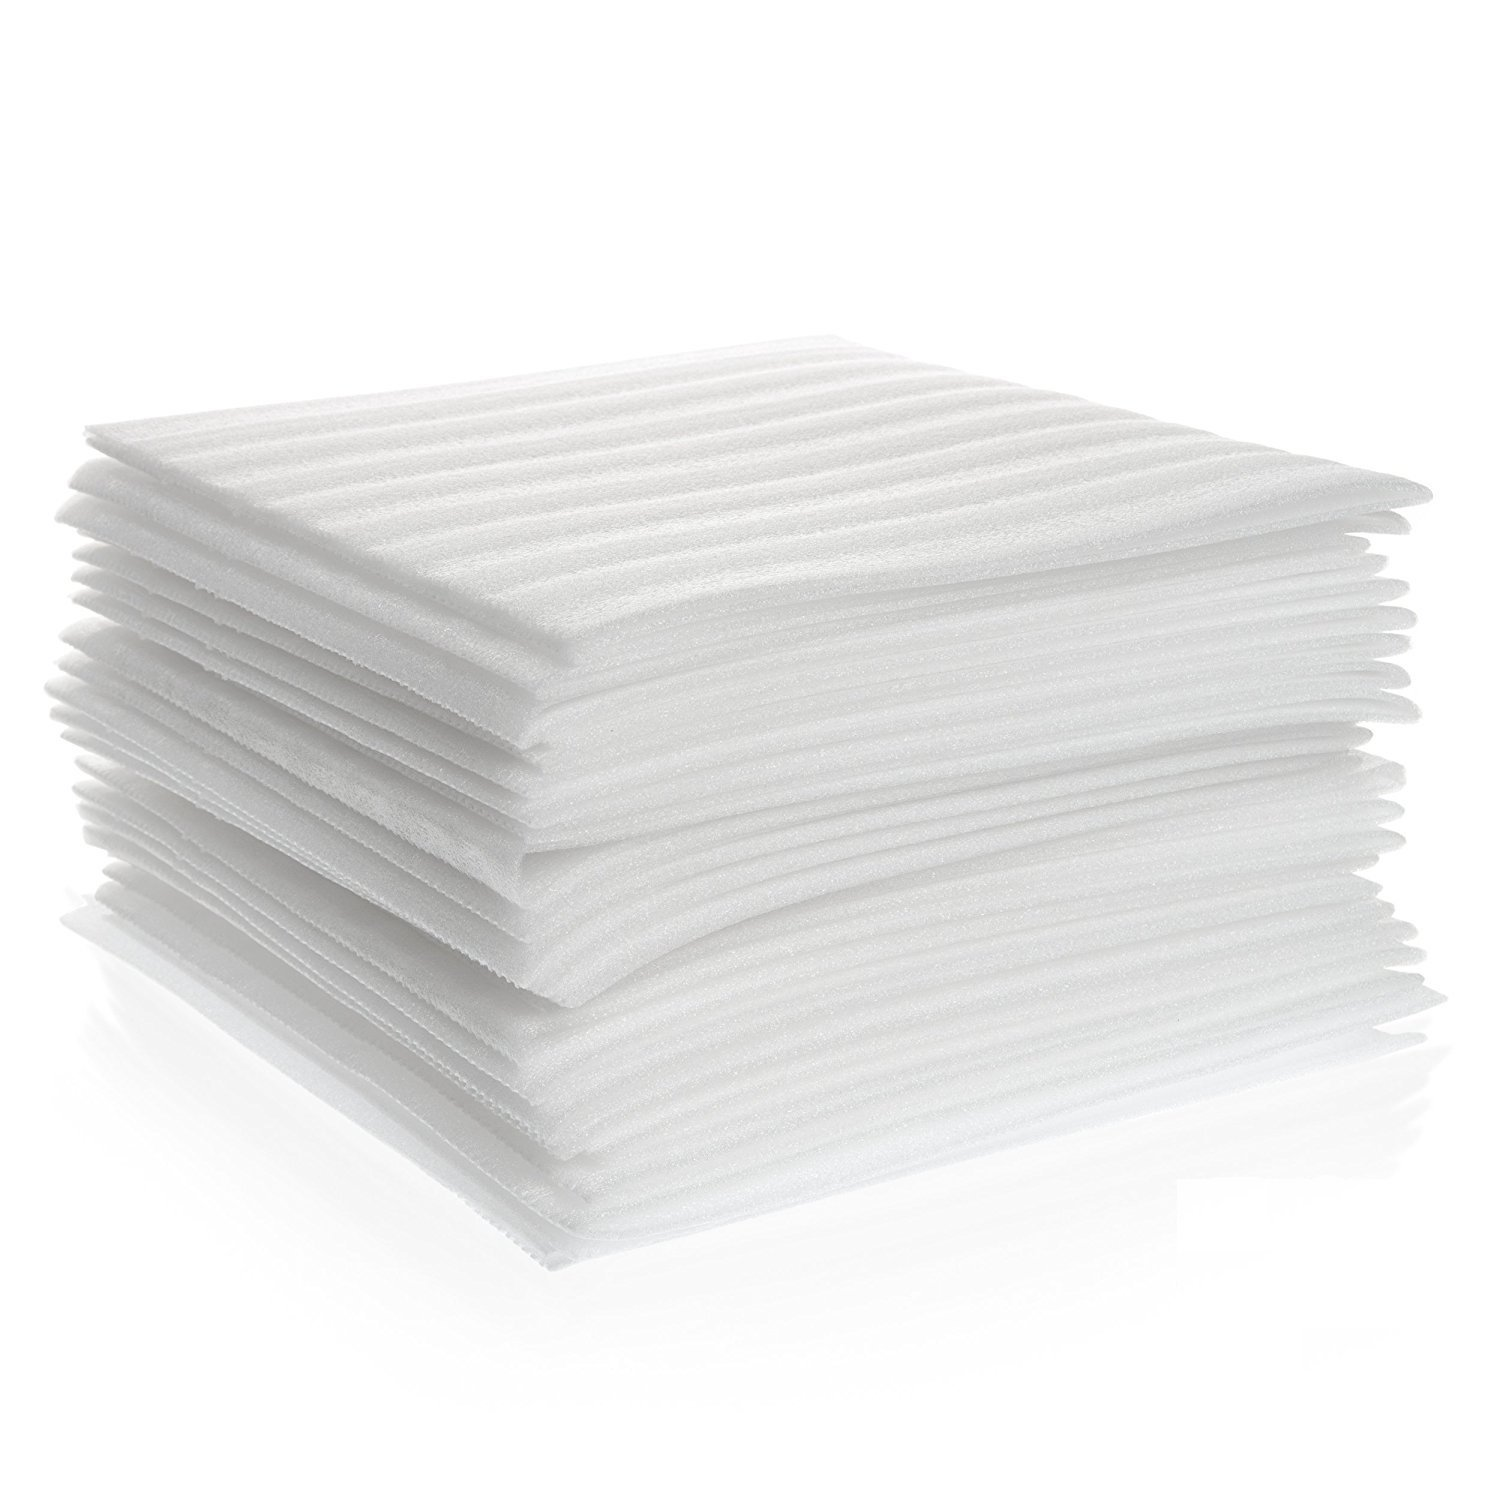 Pulse Vinyl Cushion Foam Sheets 12 X 12 250 Pack China for Wrapping Dishes Furniture Packing Supplies for Moving and Protection